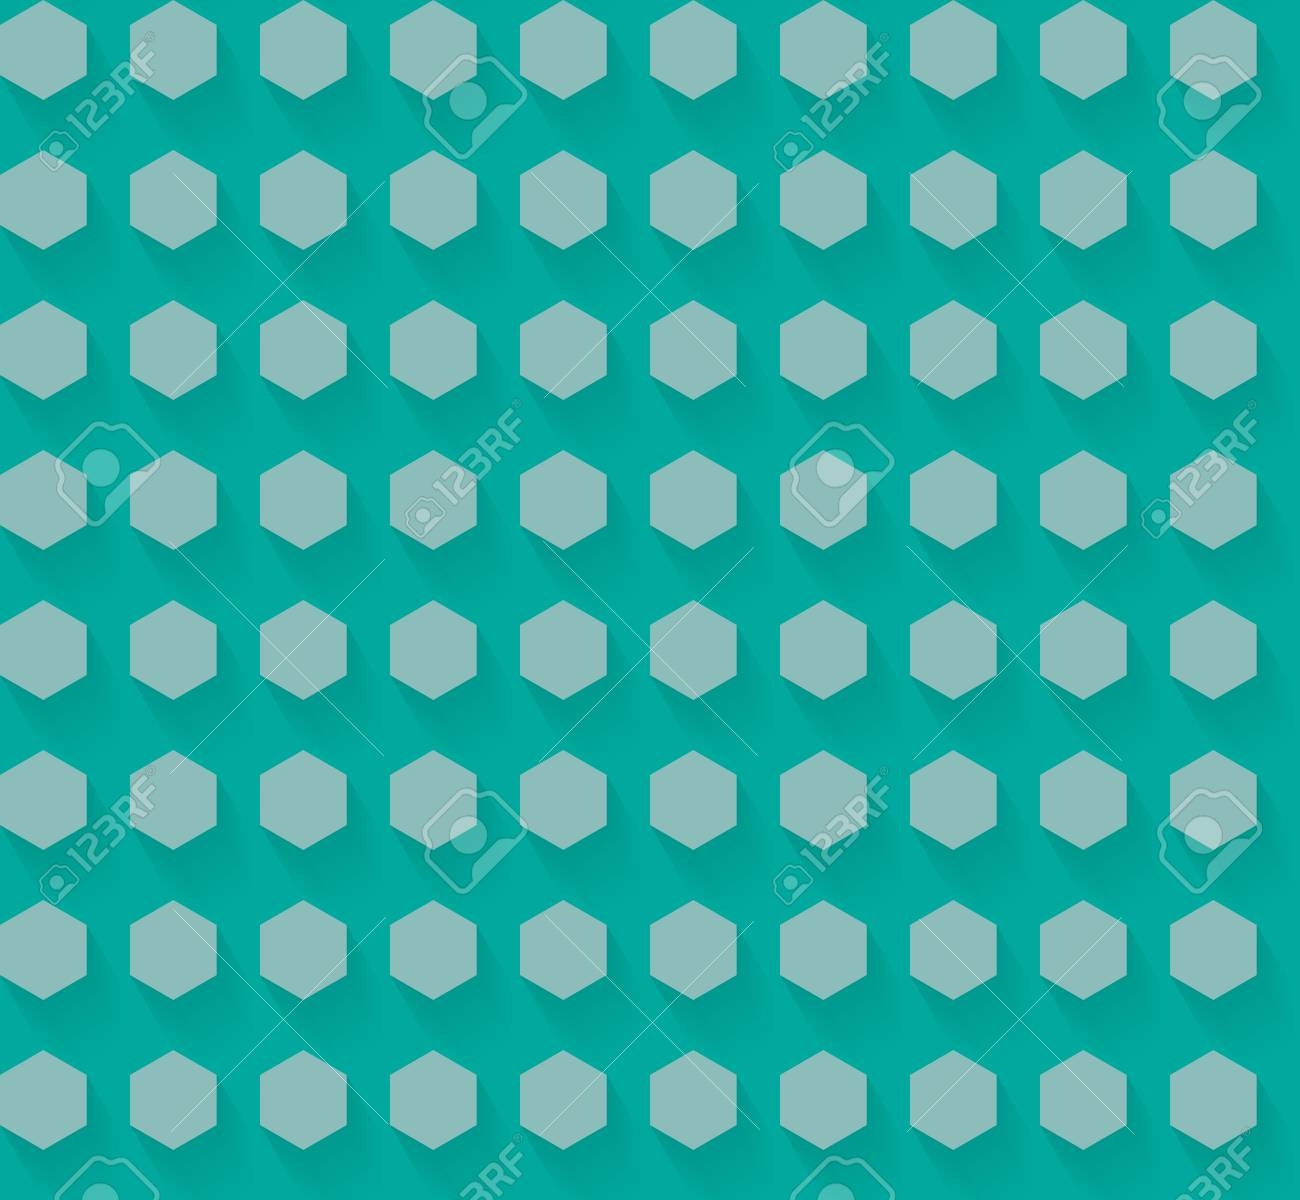 Flat Hexagon Pattern with shadow EPS10 Vector - 51755940